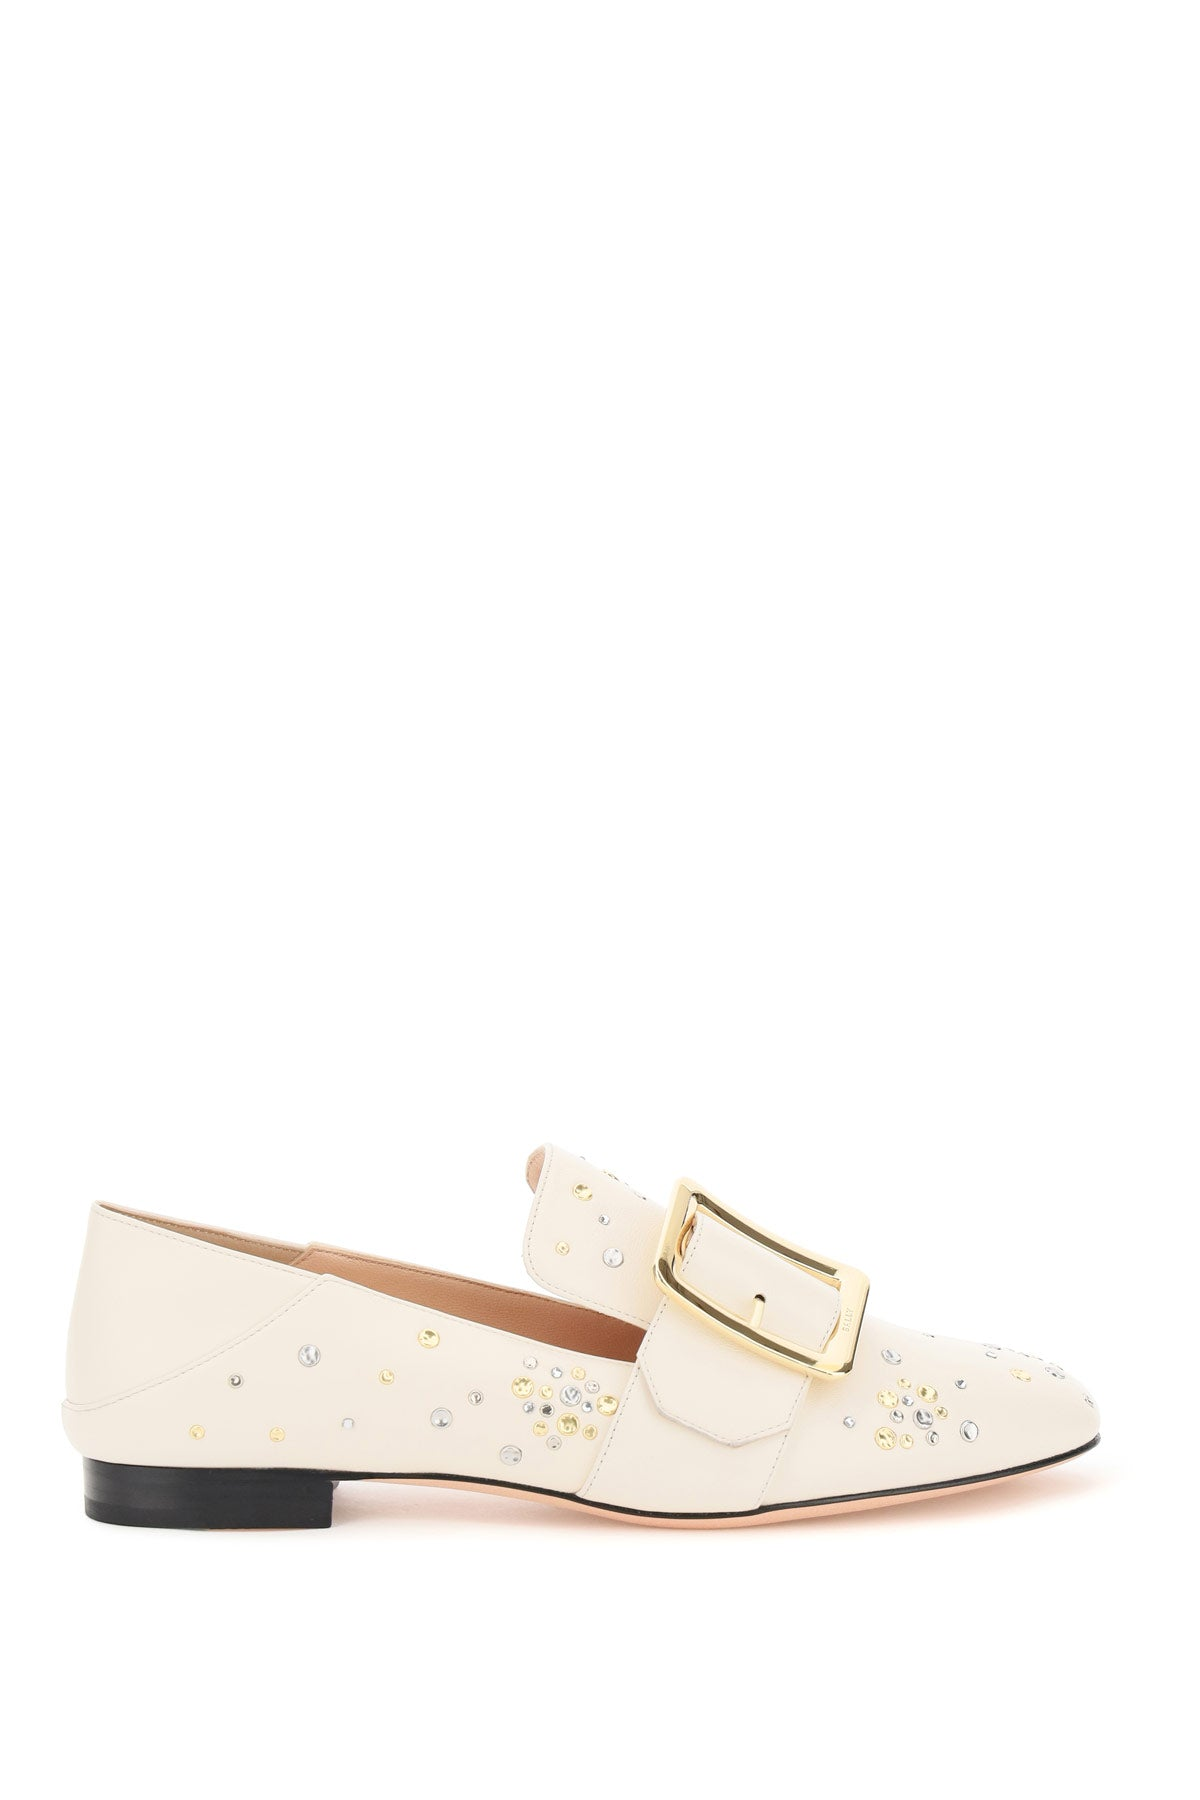 Bally BALLY JANELLE EMBELLISHED LOAFERS